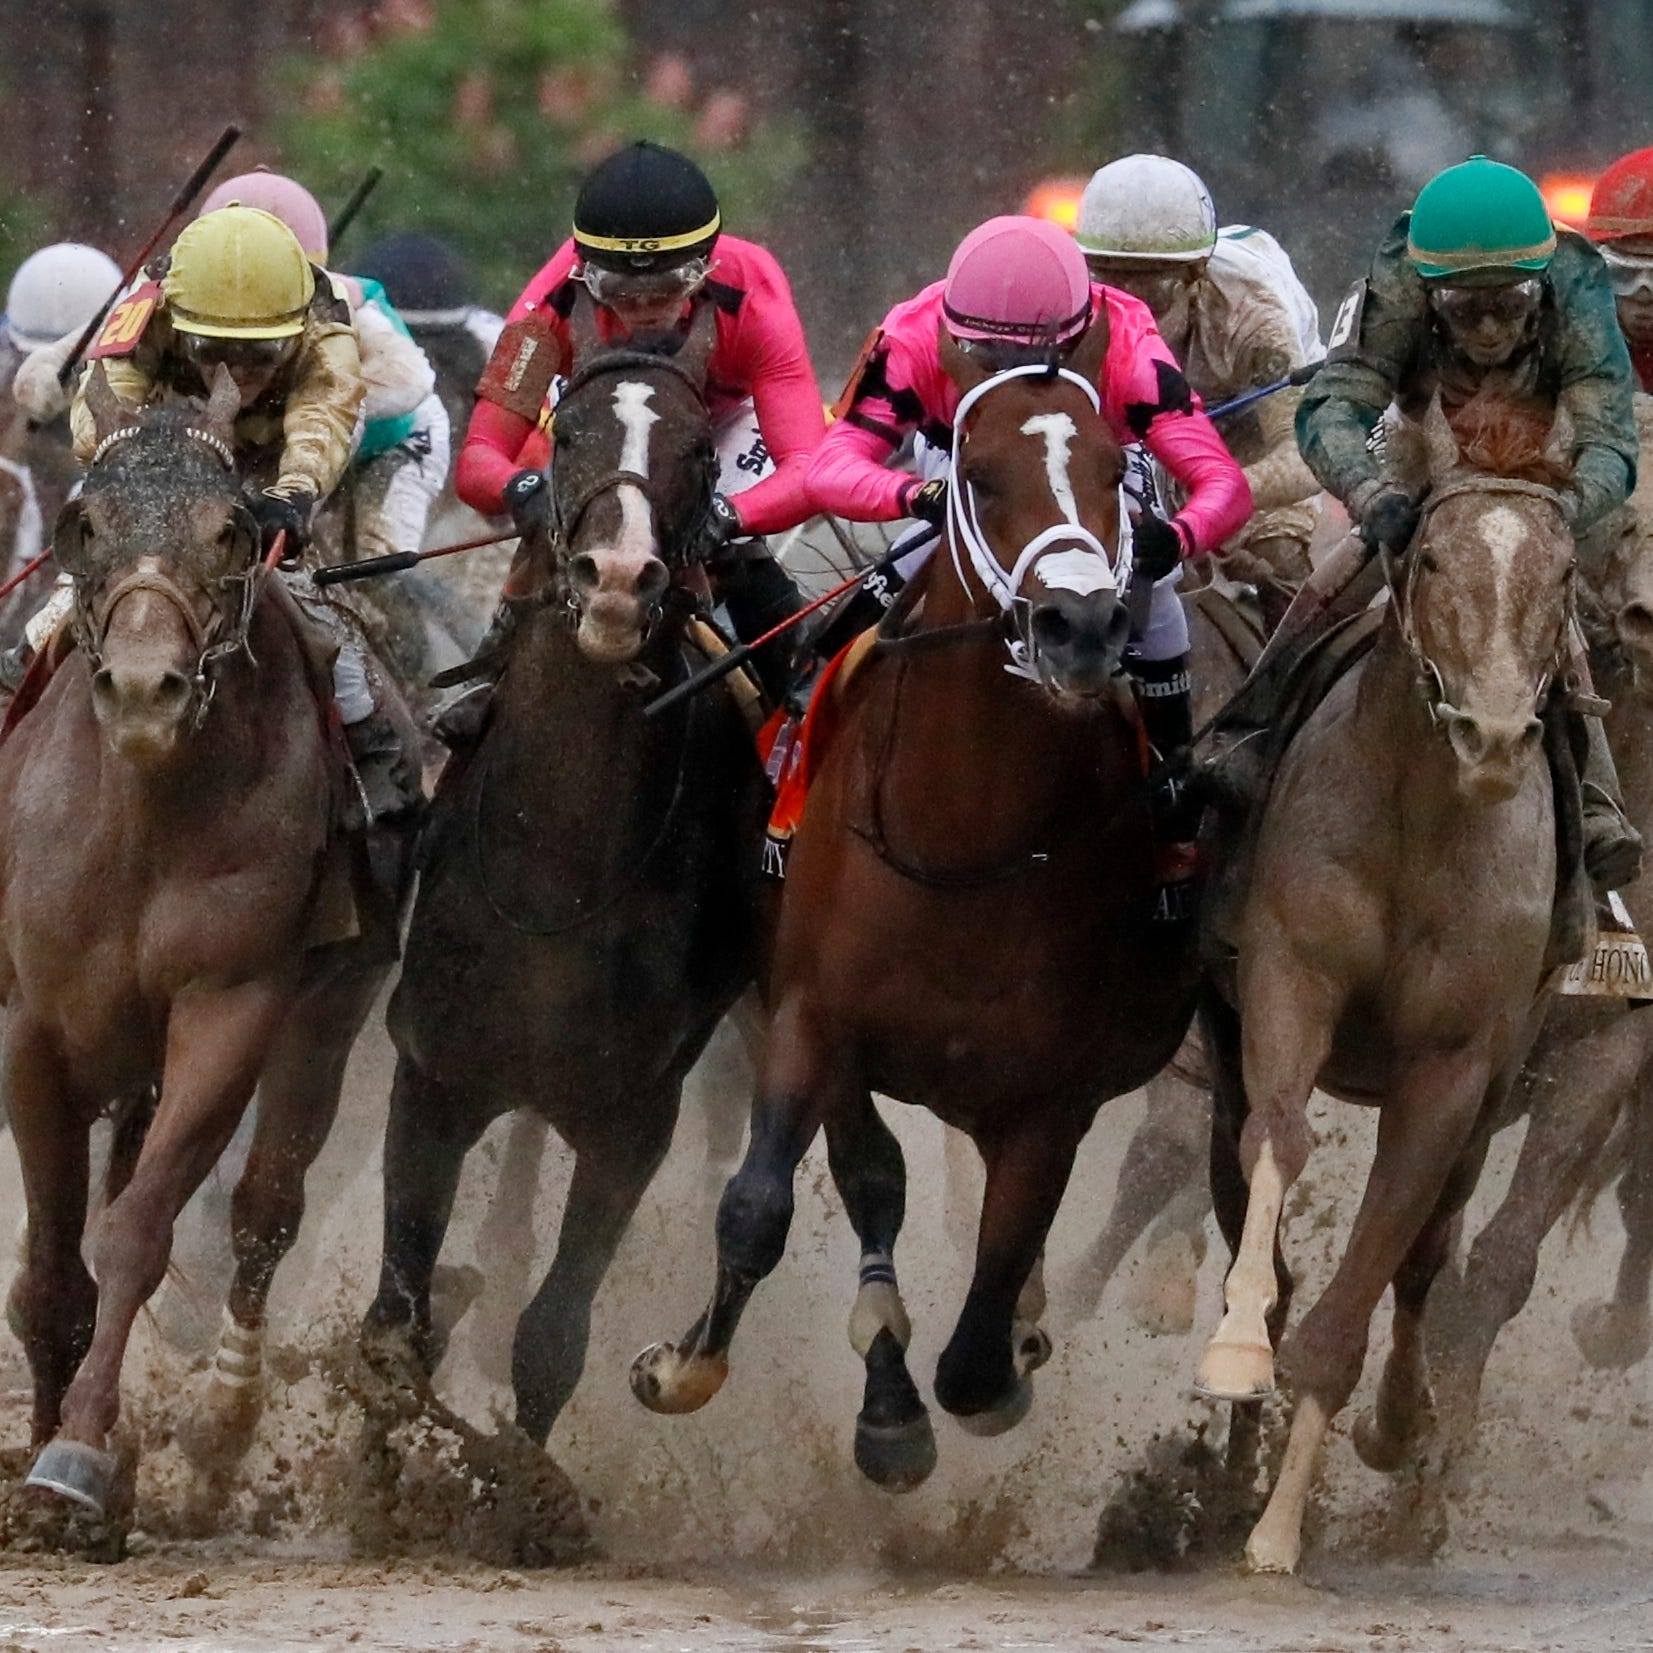 Kentucky Derby was ruined by political correctness (opinion)